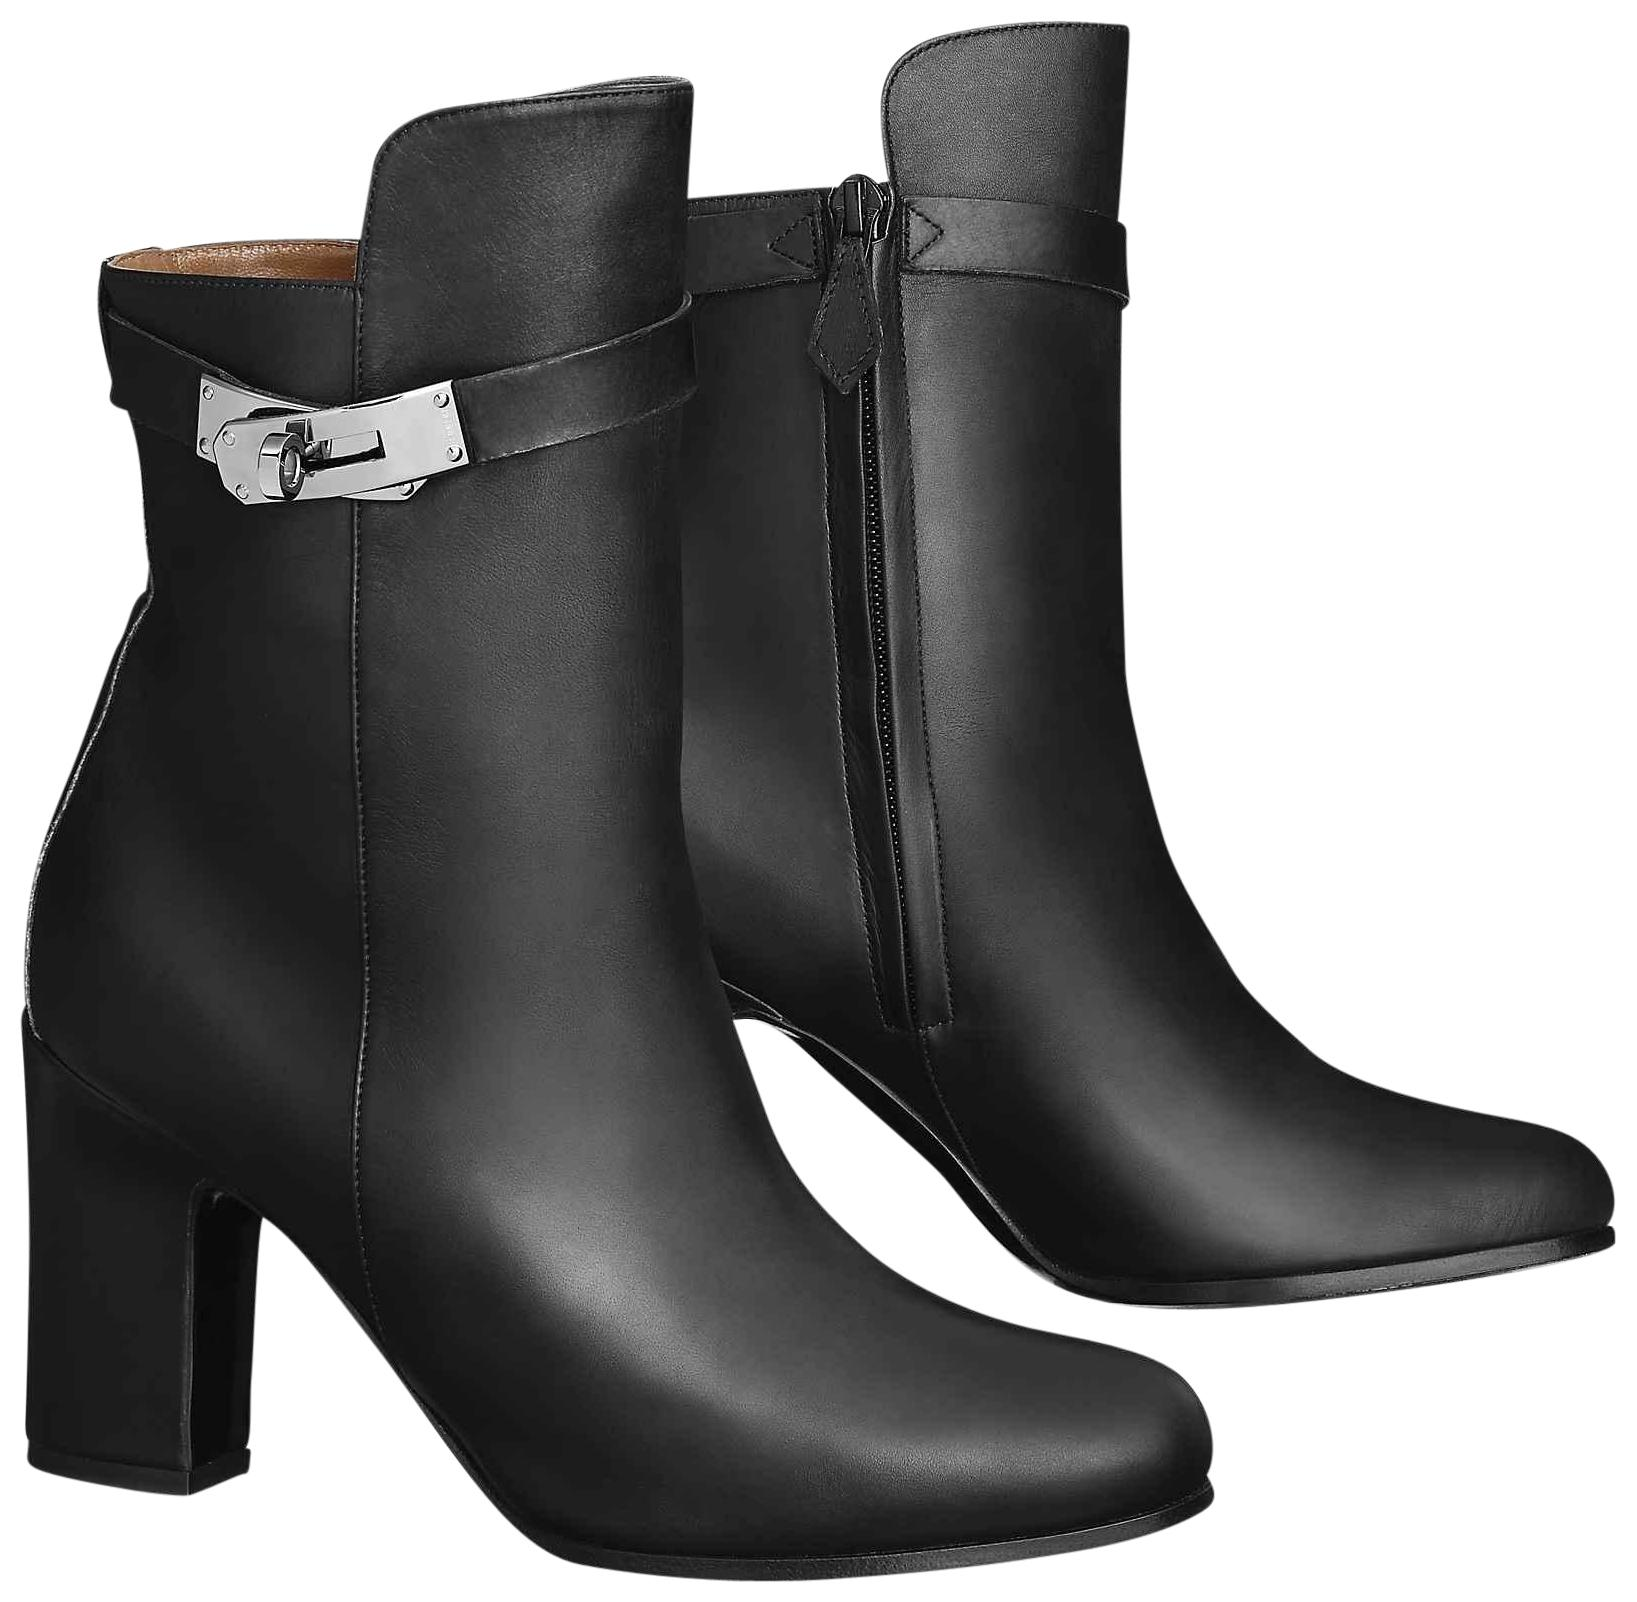 free shipping cheap real footlocker finishline sale online Hermès Leather Ankle Boots free shipping genuine get to buy sale online ZiZAij